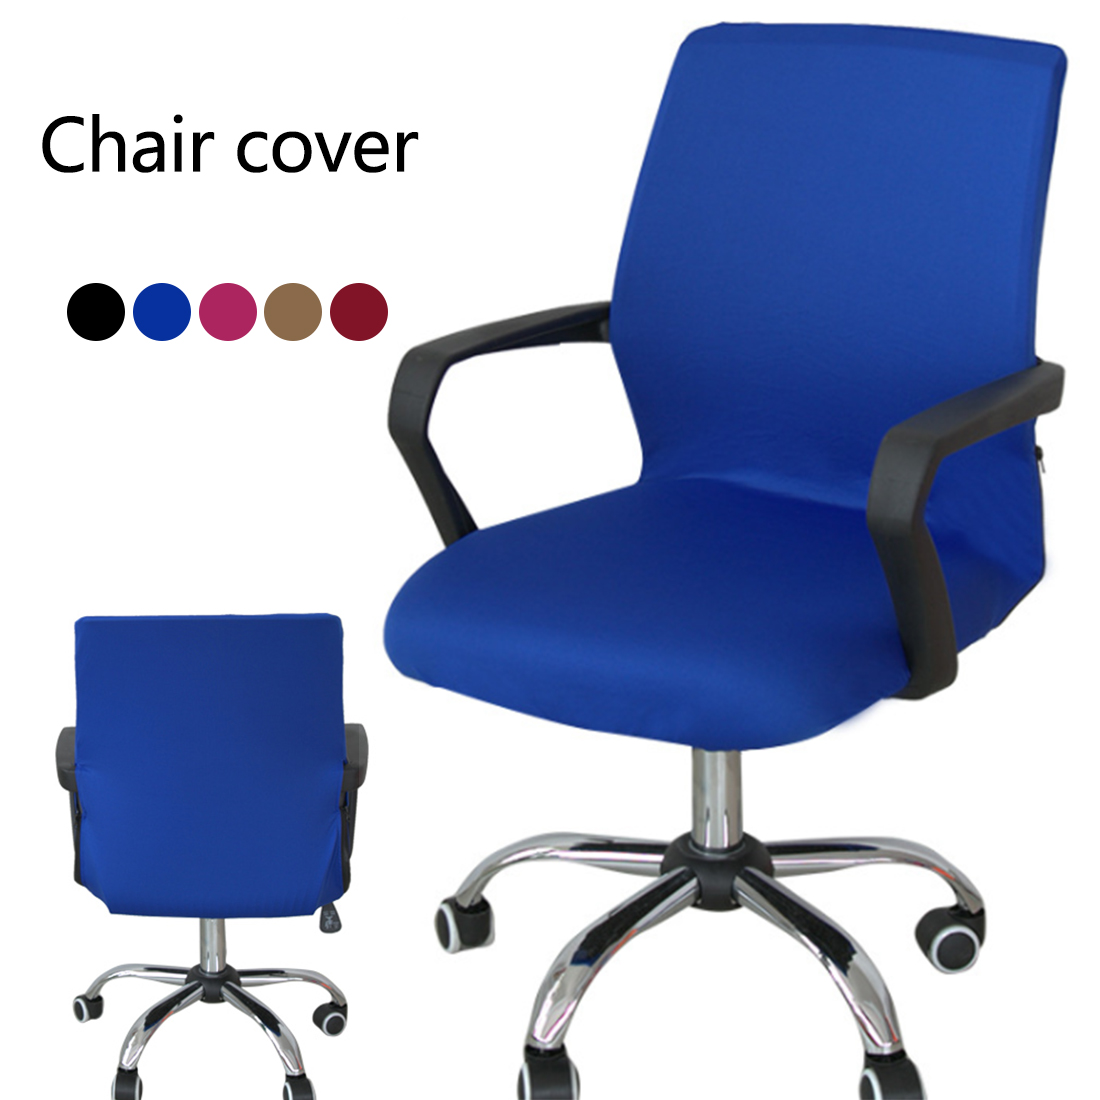 Cheap Computer Chair Top Sale Smooth Elastic Polyester Computer Chair Office Chair Cover Stretch Armchair Covering Dining Chair Protector Slipcover In Chair Cover From